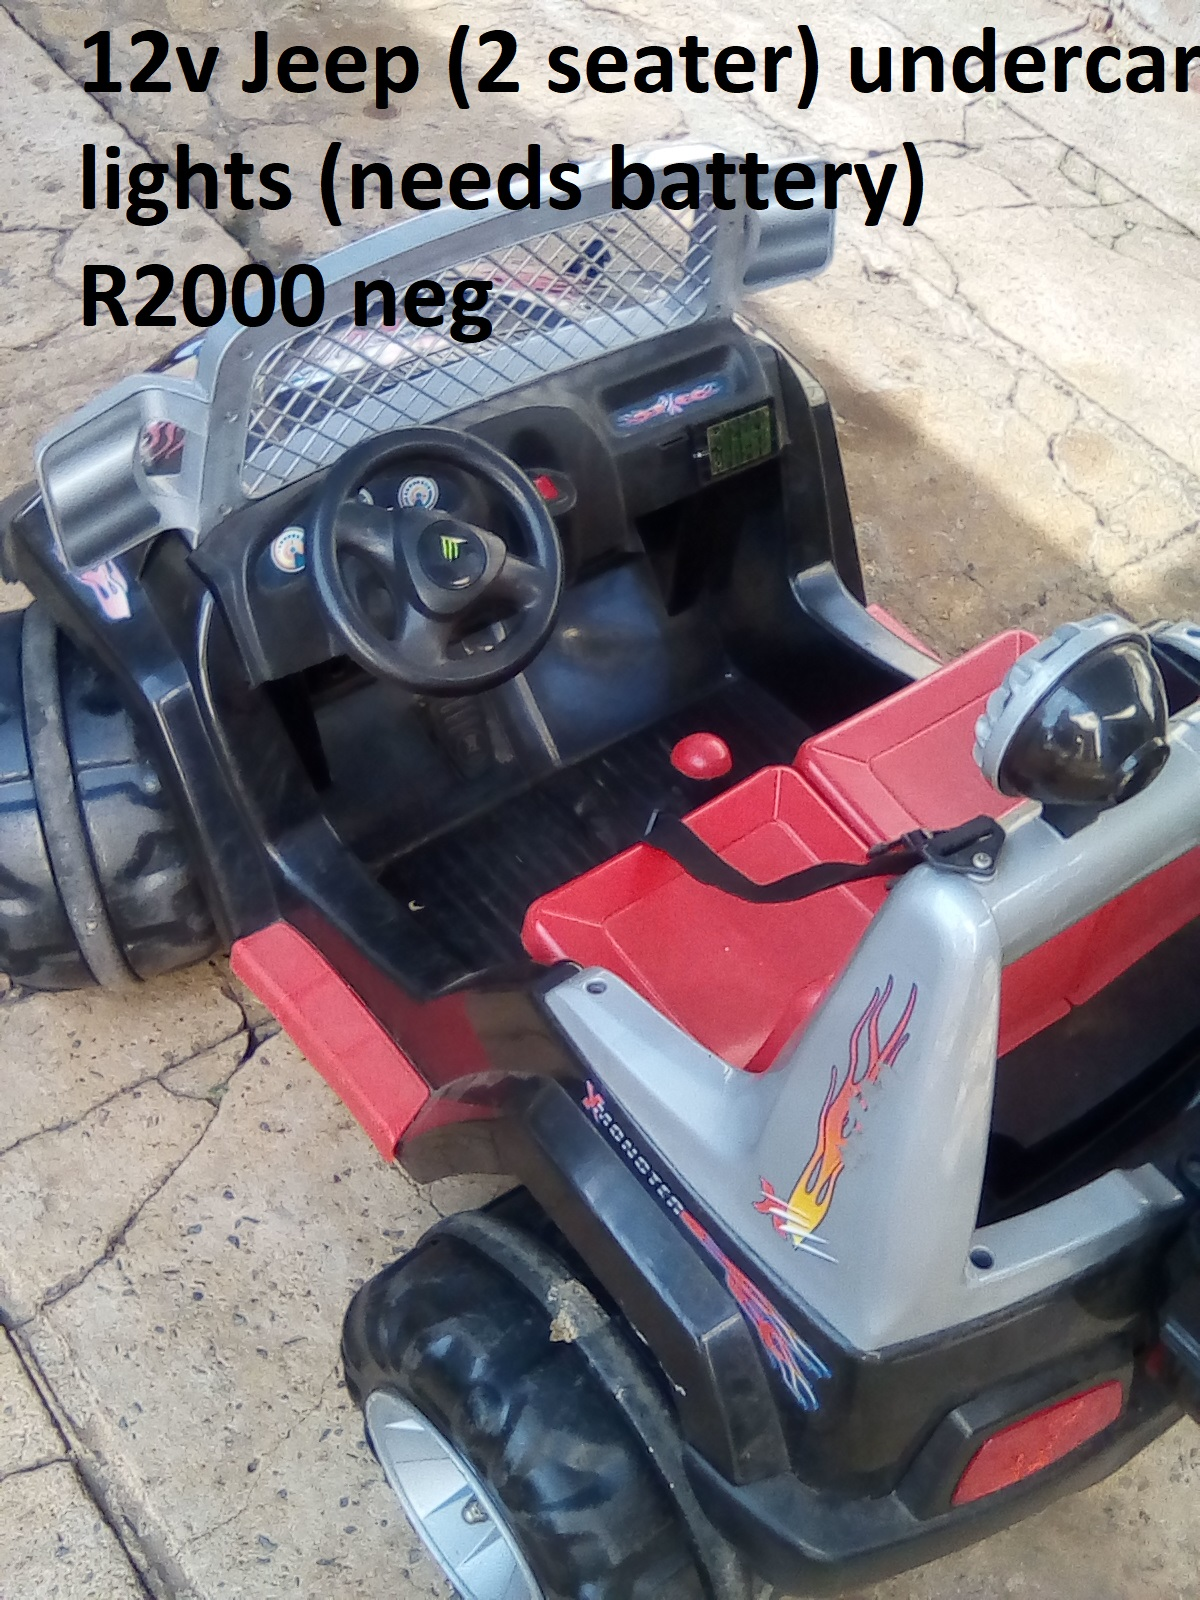 12v Jeep 2 seater (undercar lights) (needs battery)